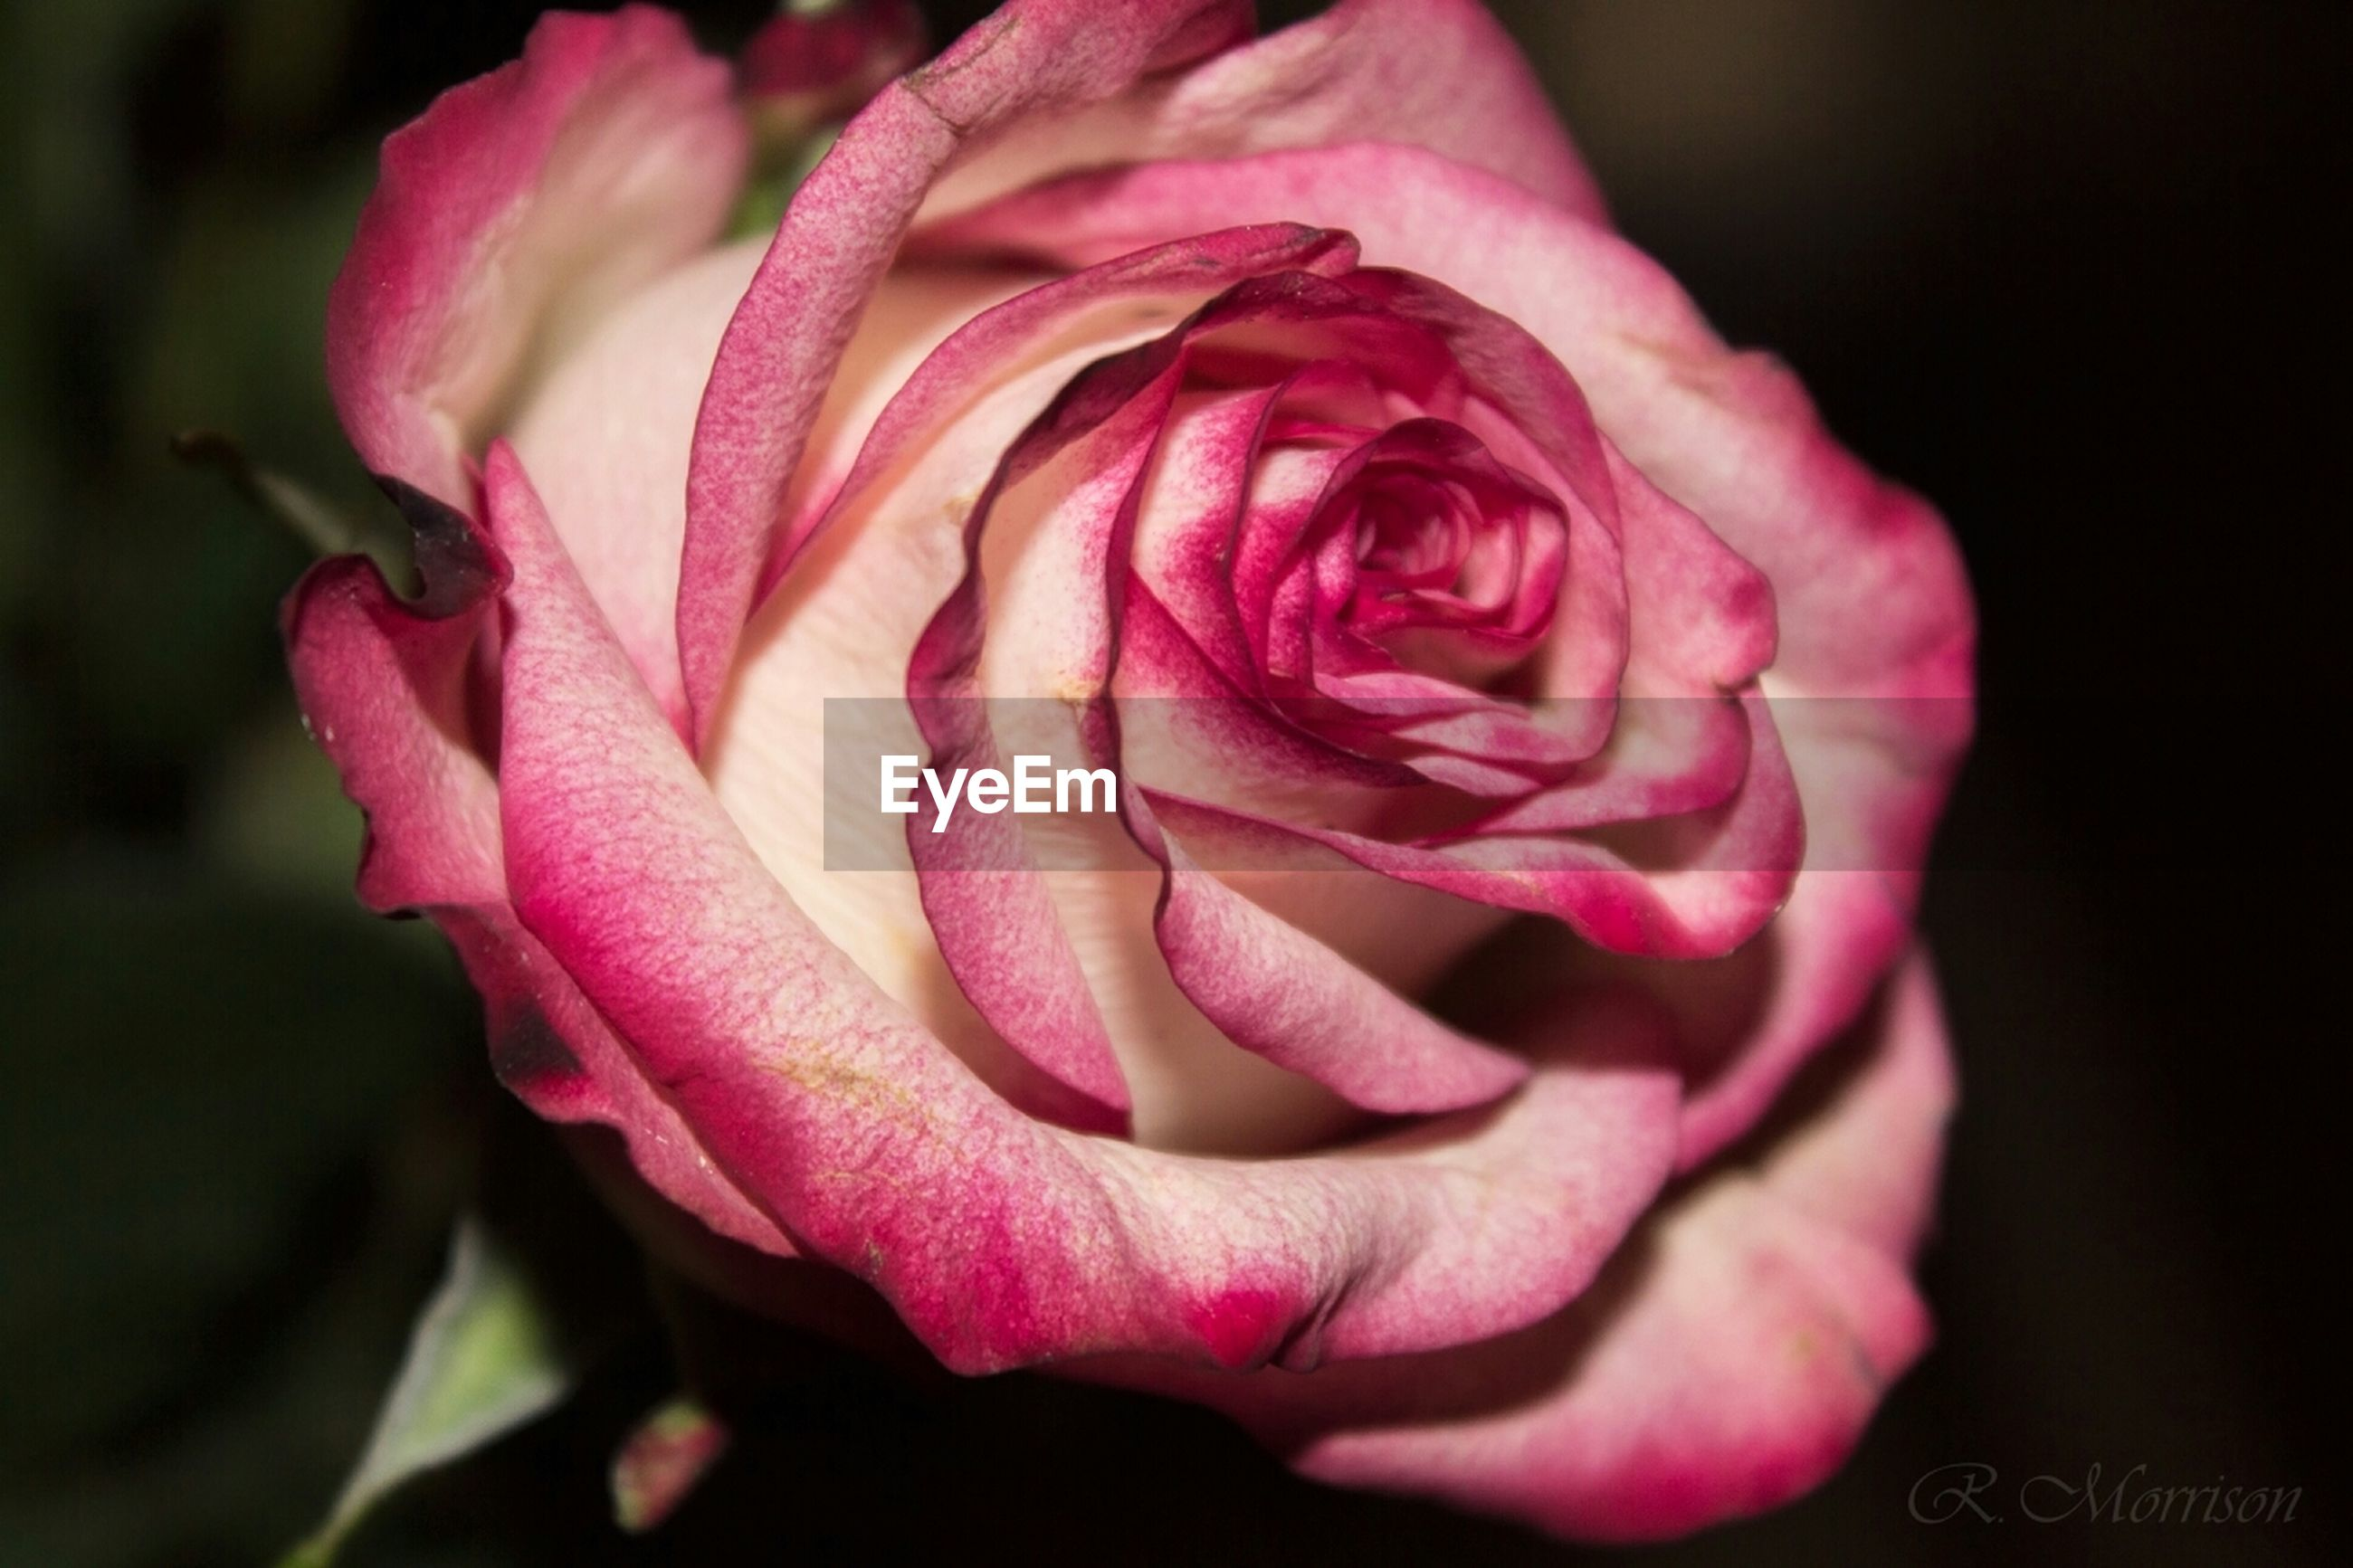 flower, petal, rose - flower, flower head, fragility, freshness, close-up, beauty in nature, rose, single flower, growth, pink color, single rose, nature, focus on foreground, blooming, in bloom, plant, blossom, selective focus